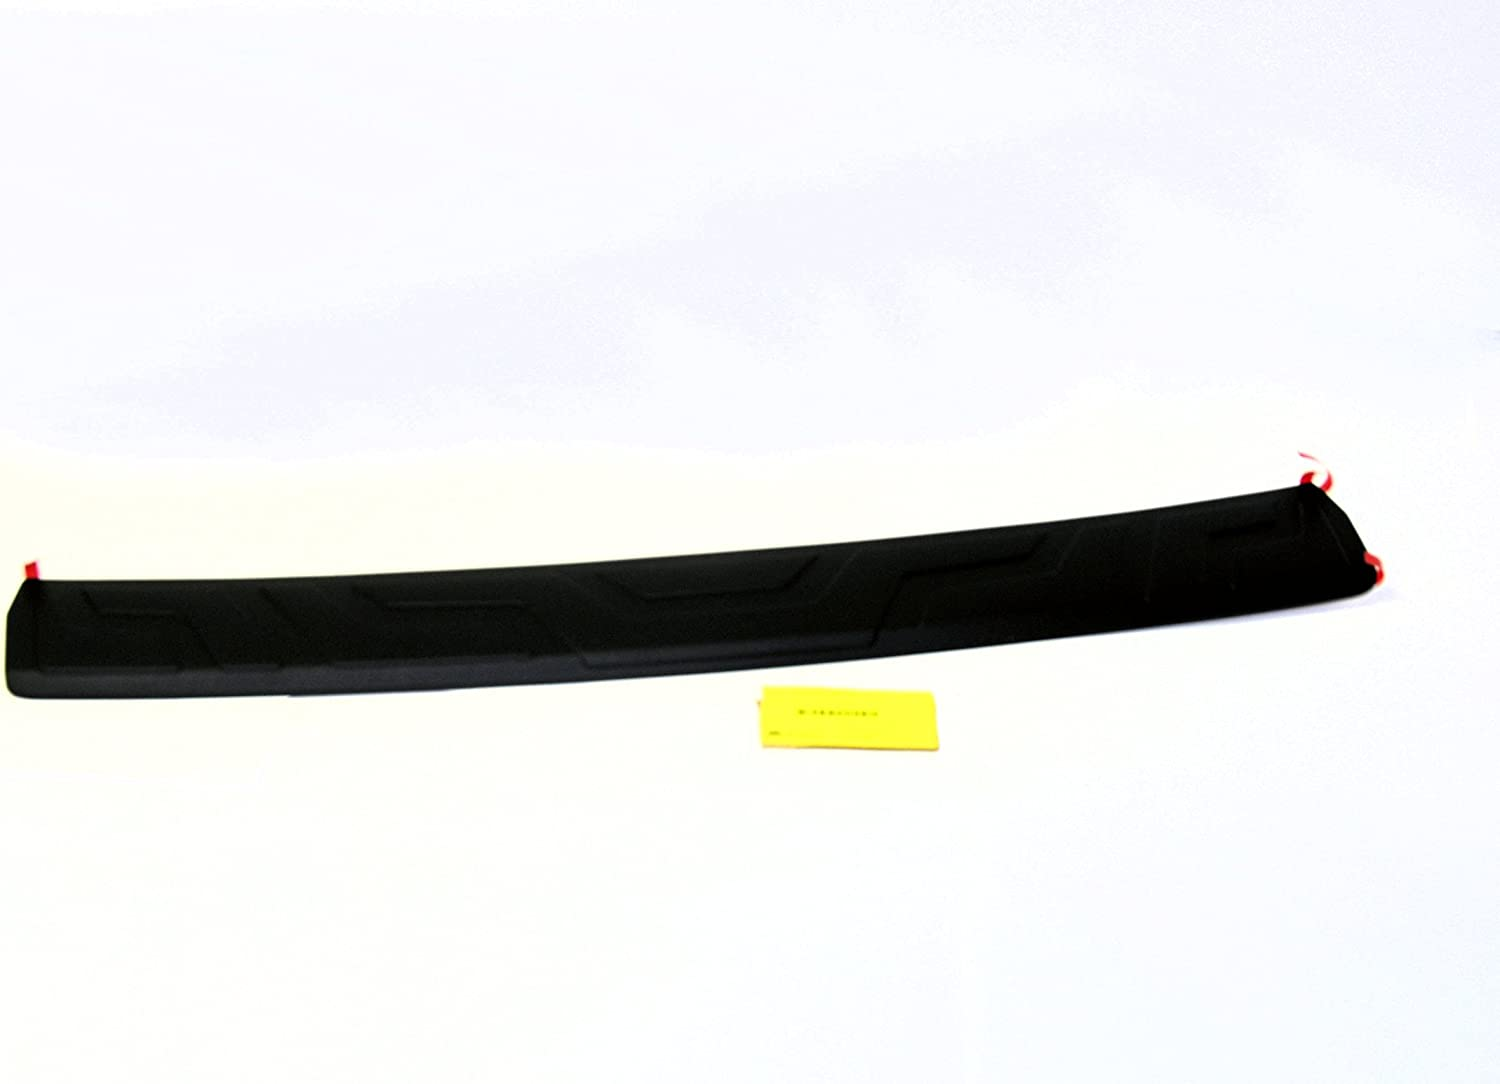 Subaru E771SFJ401 Accessories